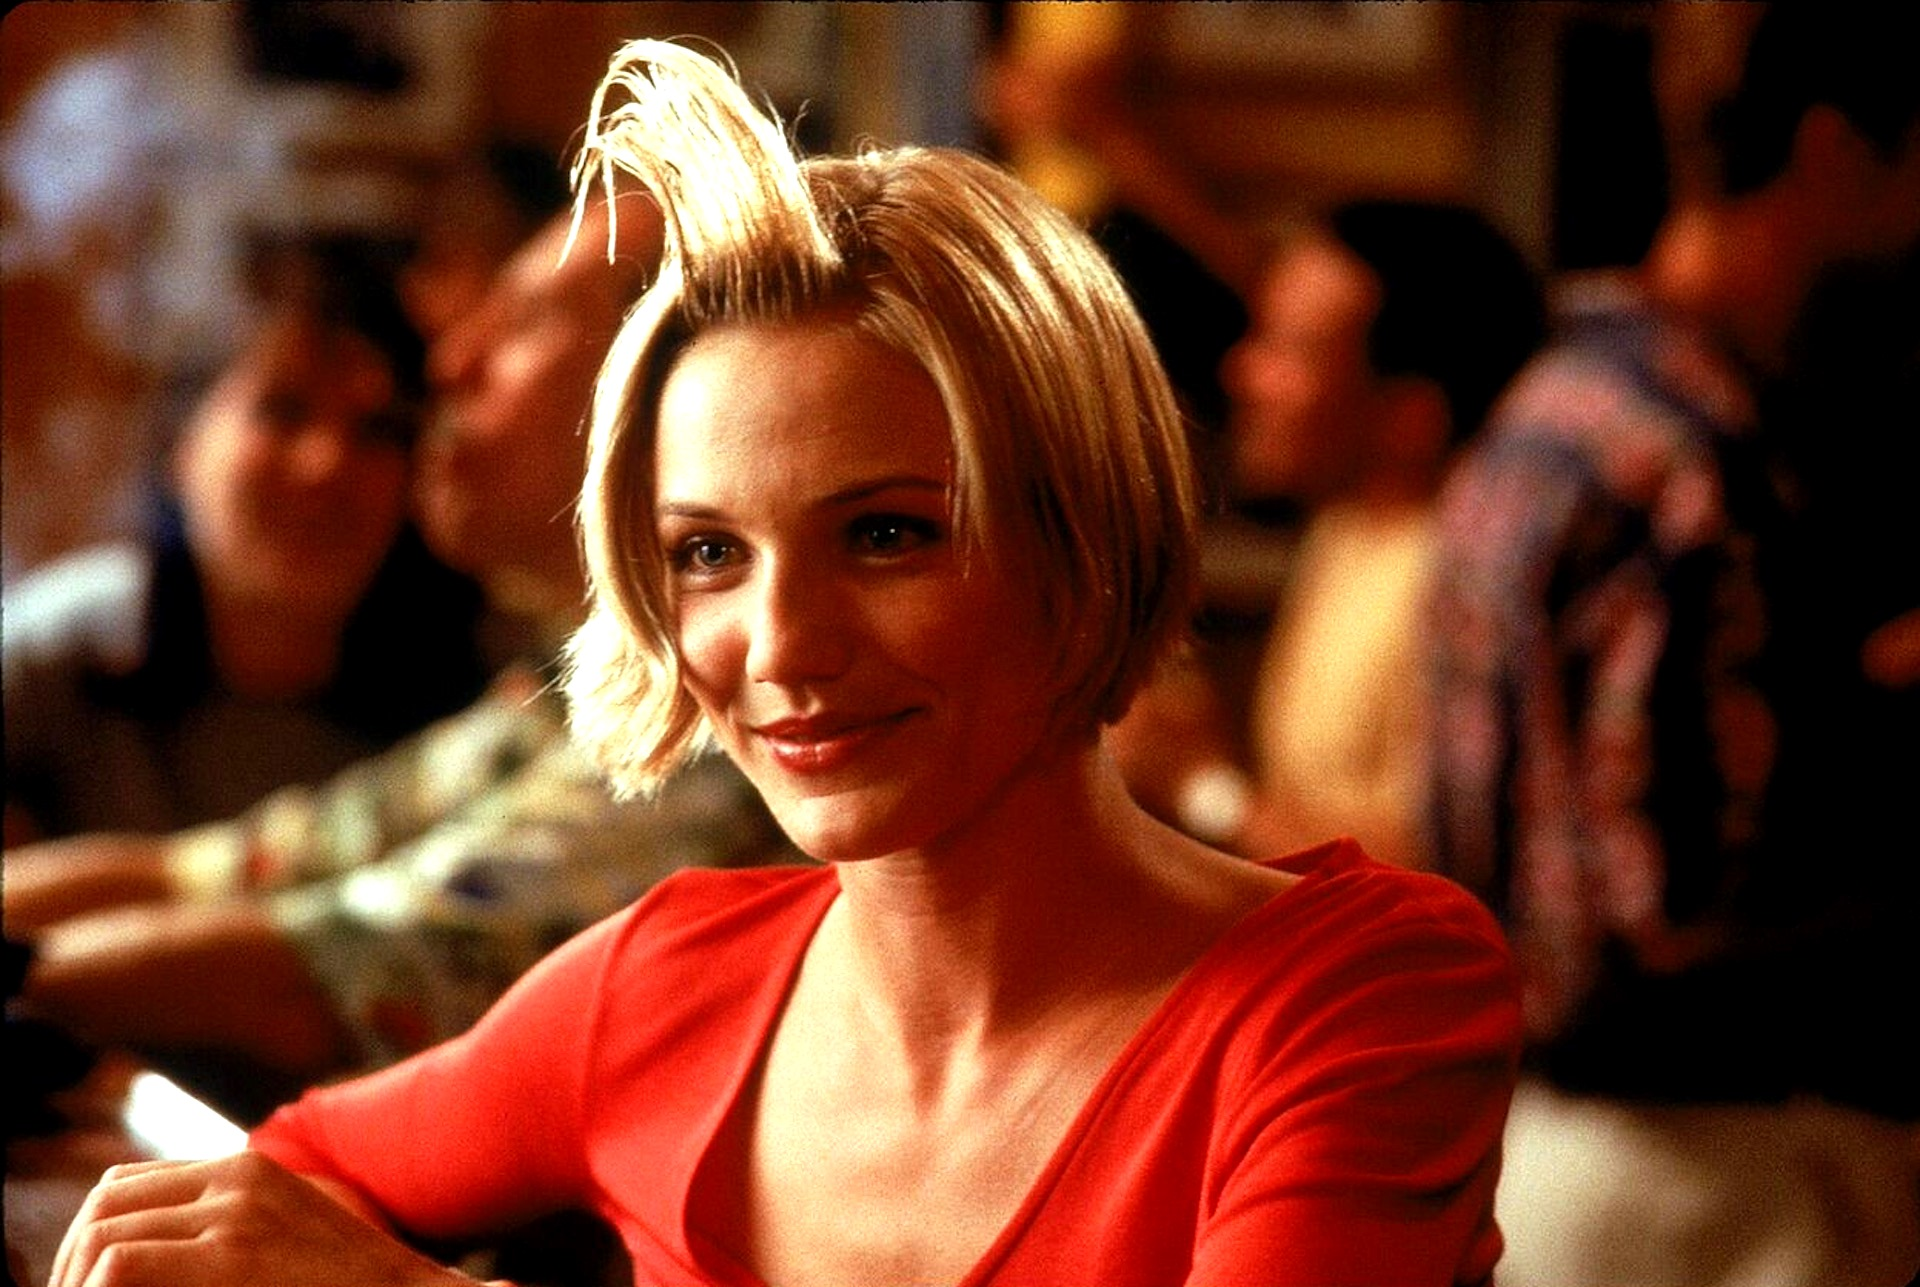 Cameron Diaz as Mary sporting 'hair gel' in There's Something About Mary (1998)